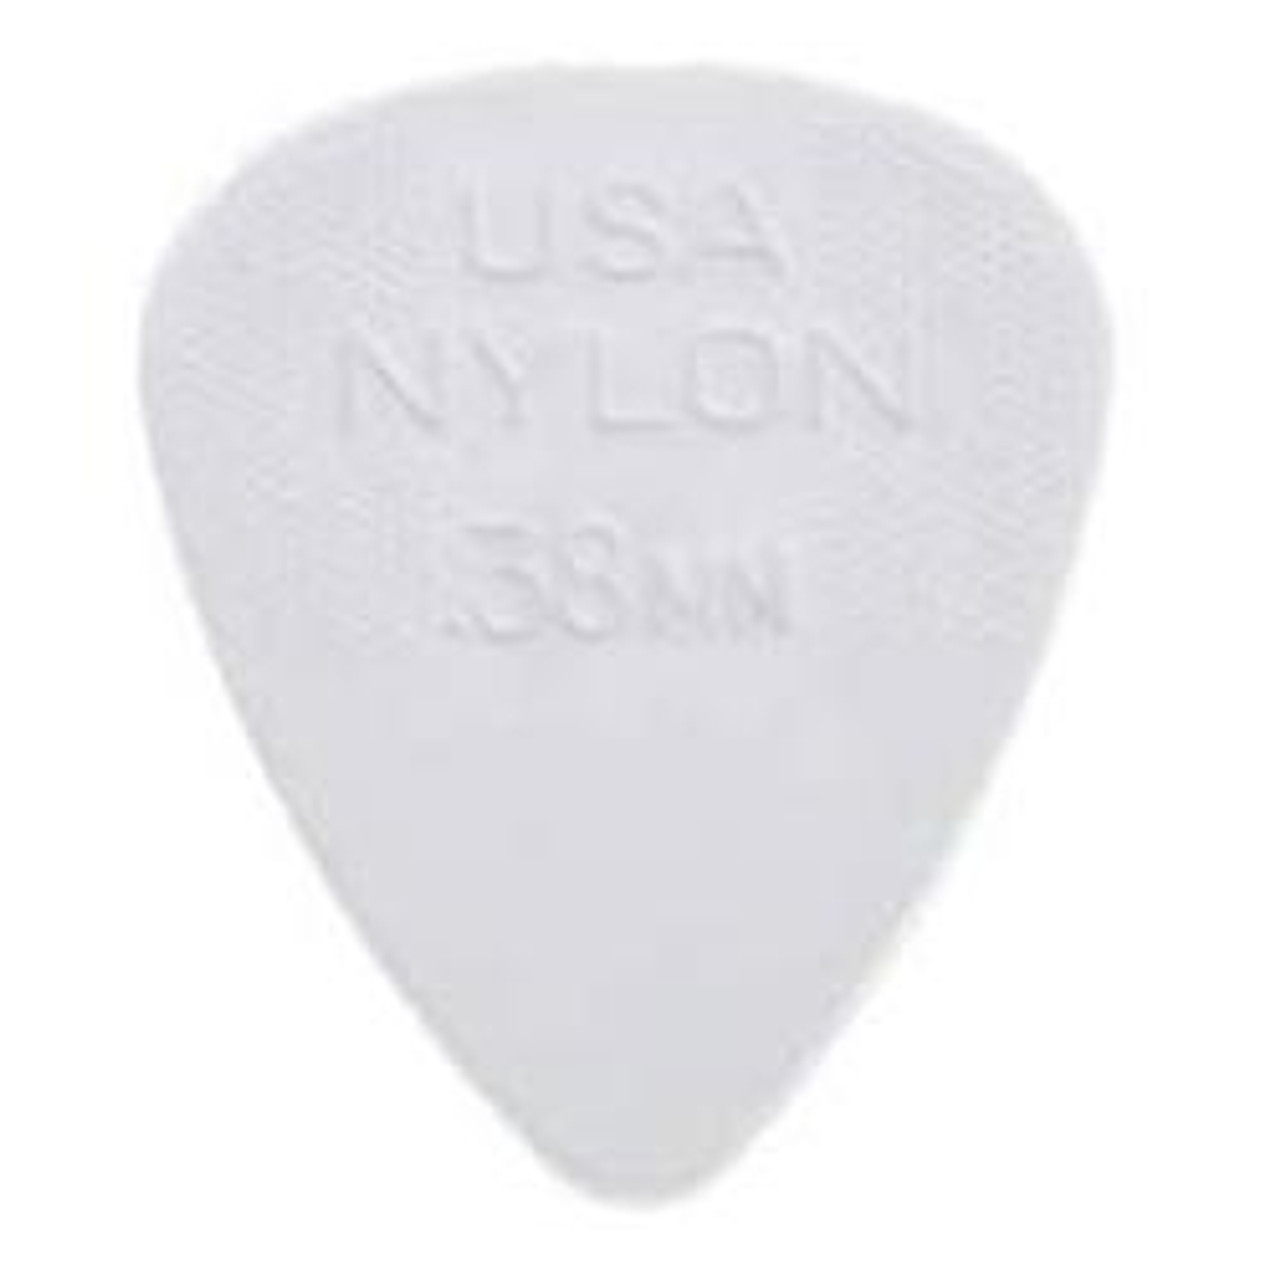 Dunlop Nylon Guitar Pick .38mm